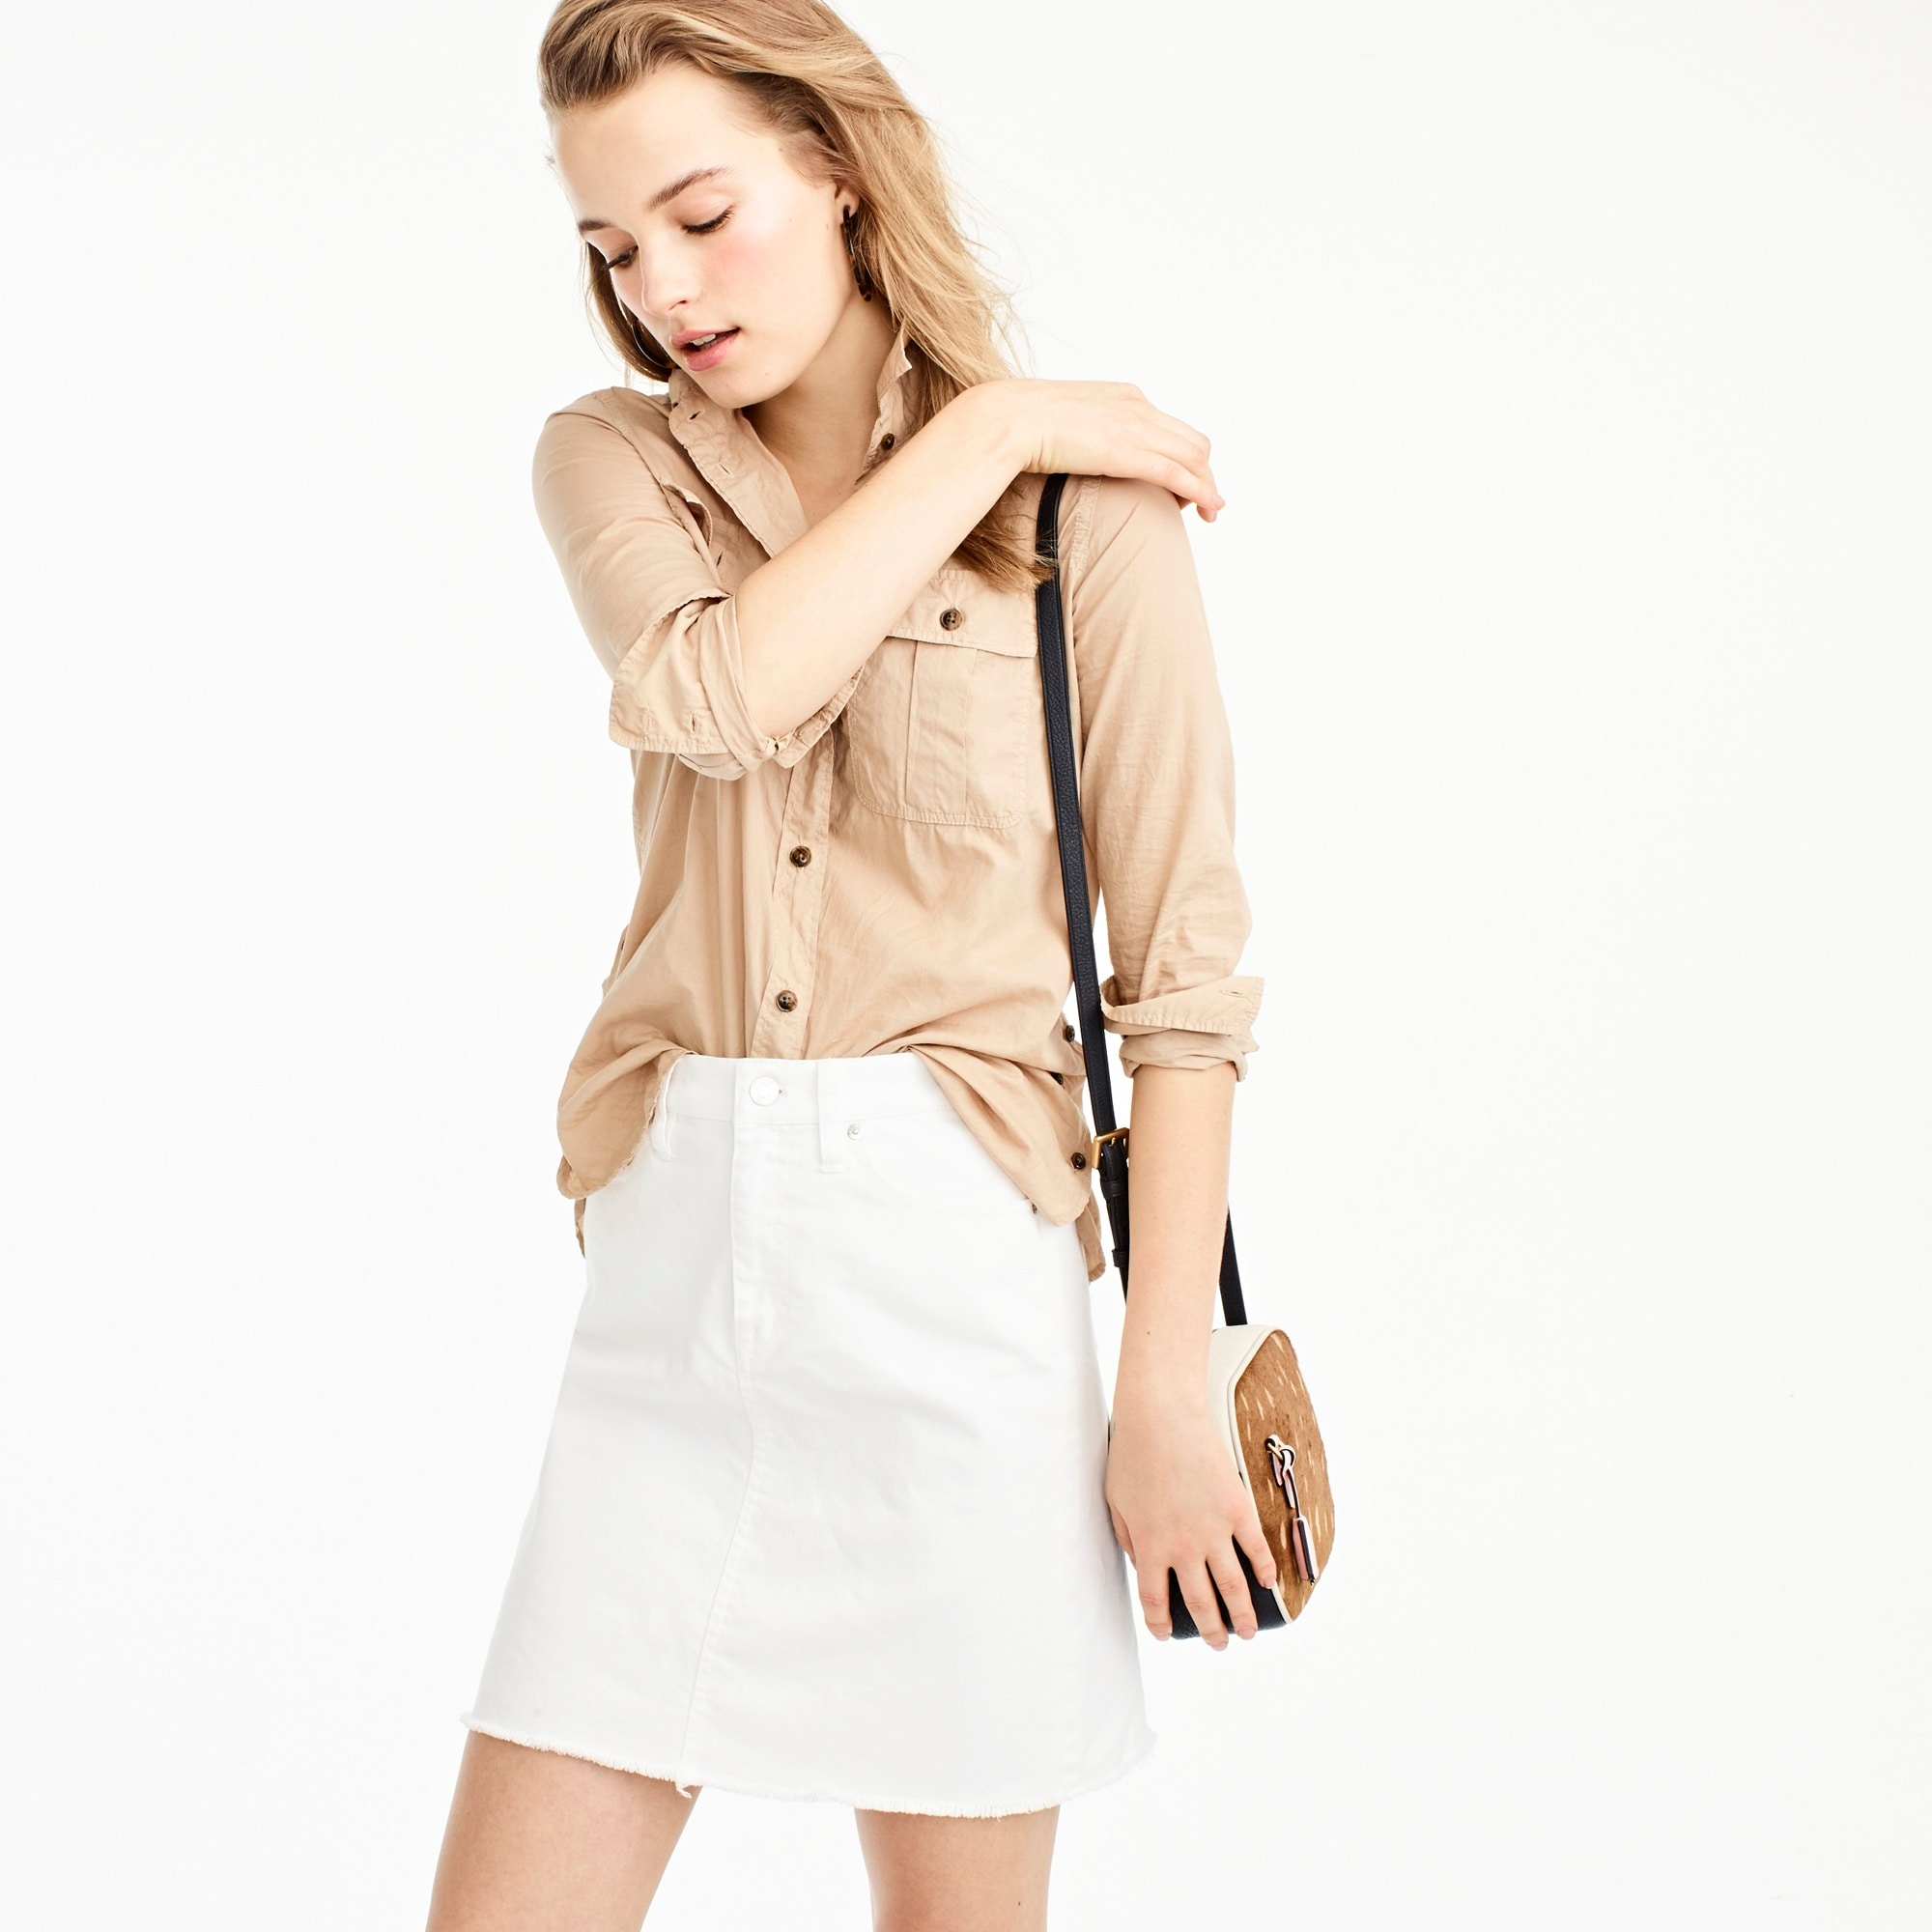 white denim skirt with raw hem : women denim